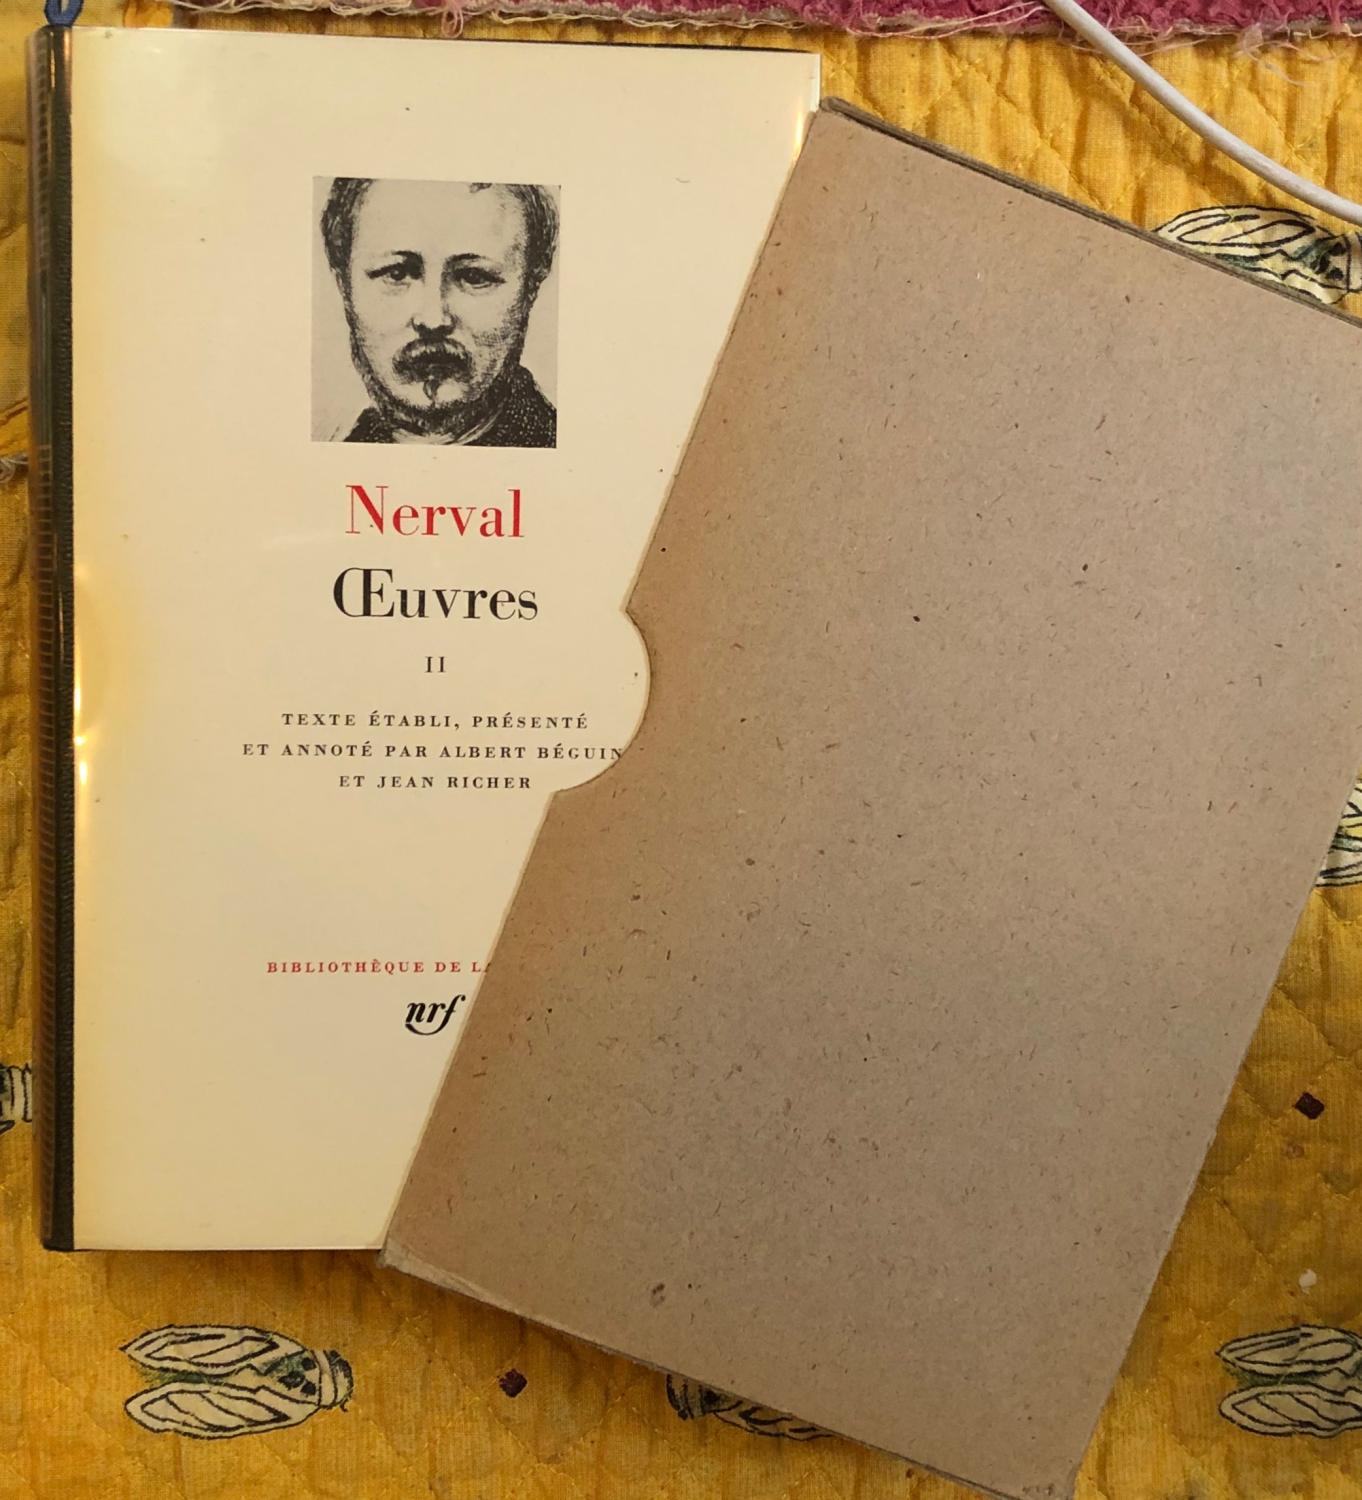 Oeuvres T2 Nerval [New] [Hardcover] (bi_30613321375) photo